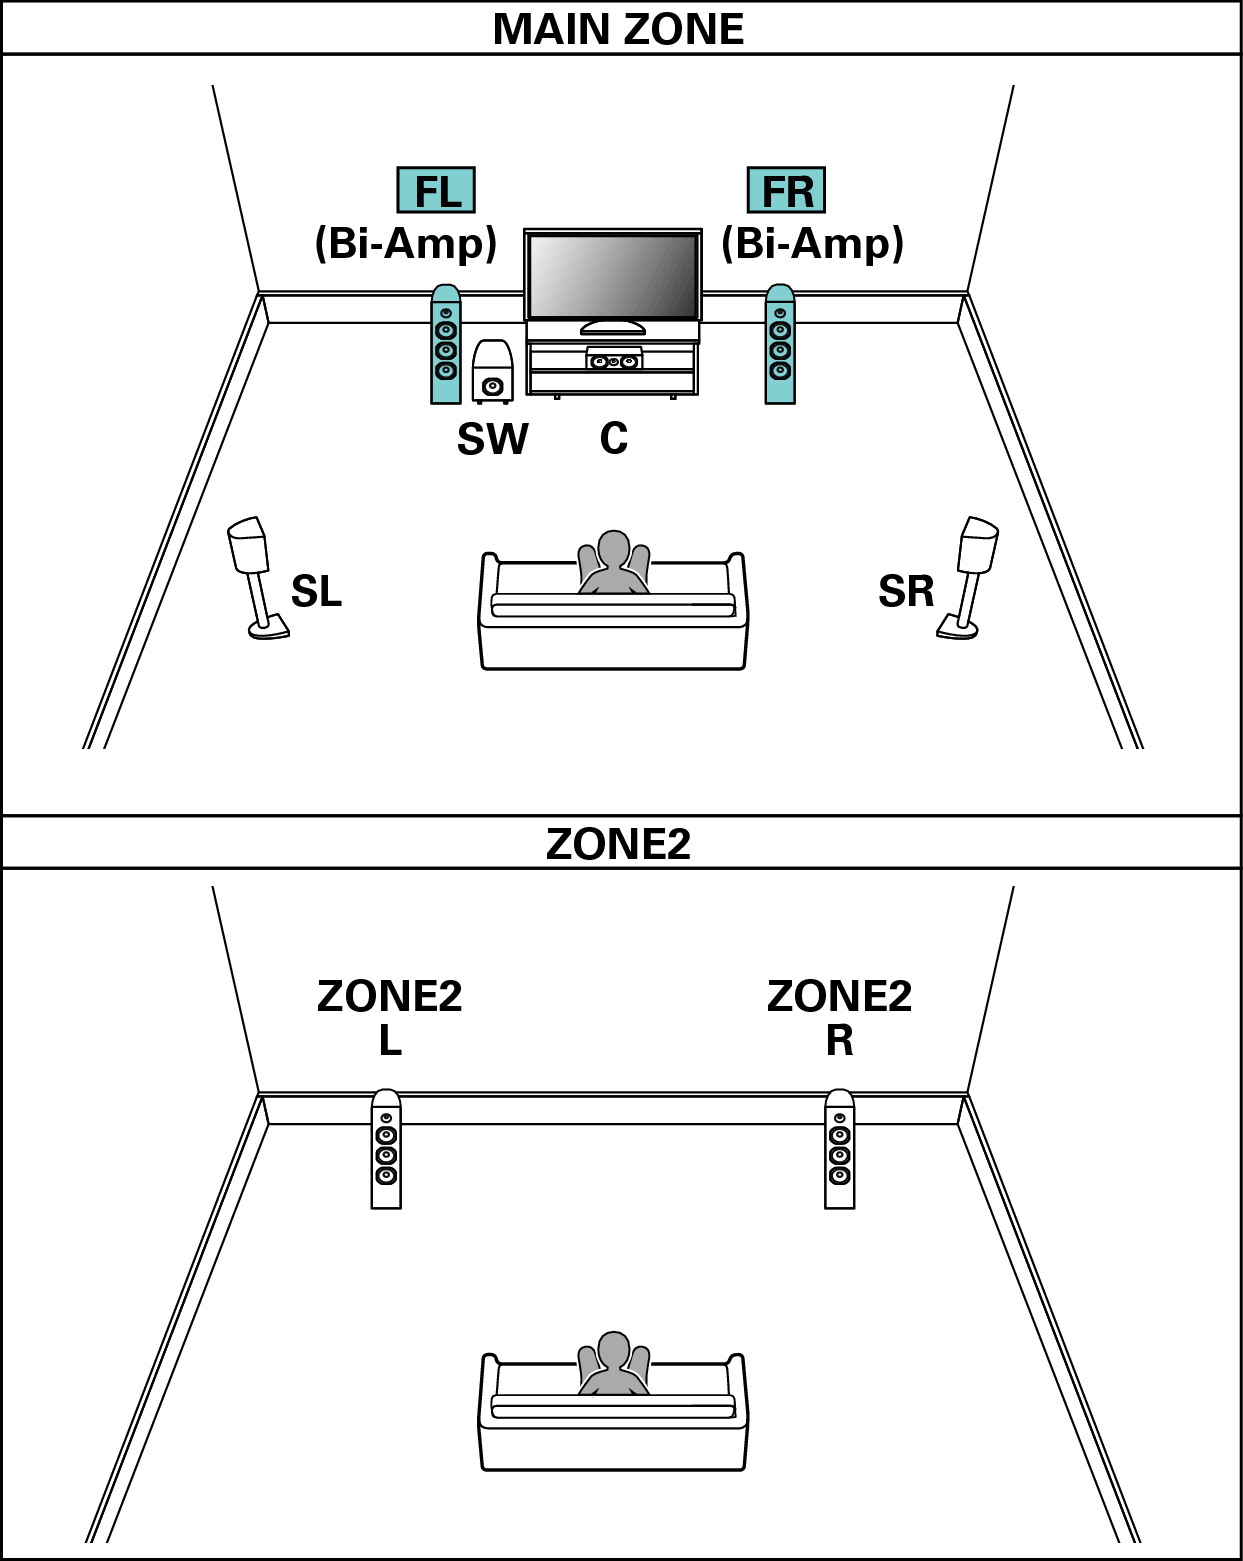 Speaker Configuration And Amp Assign Settings Sr7011 Volume Control Wiring Diagram Further 3 Way Pict Sp Layout 51 Biamp 2ch